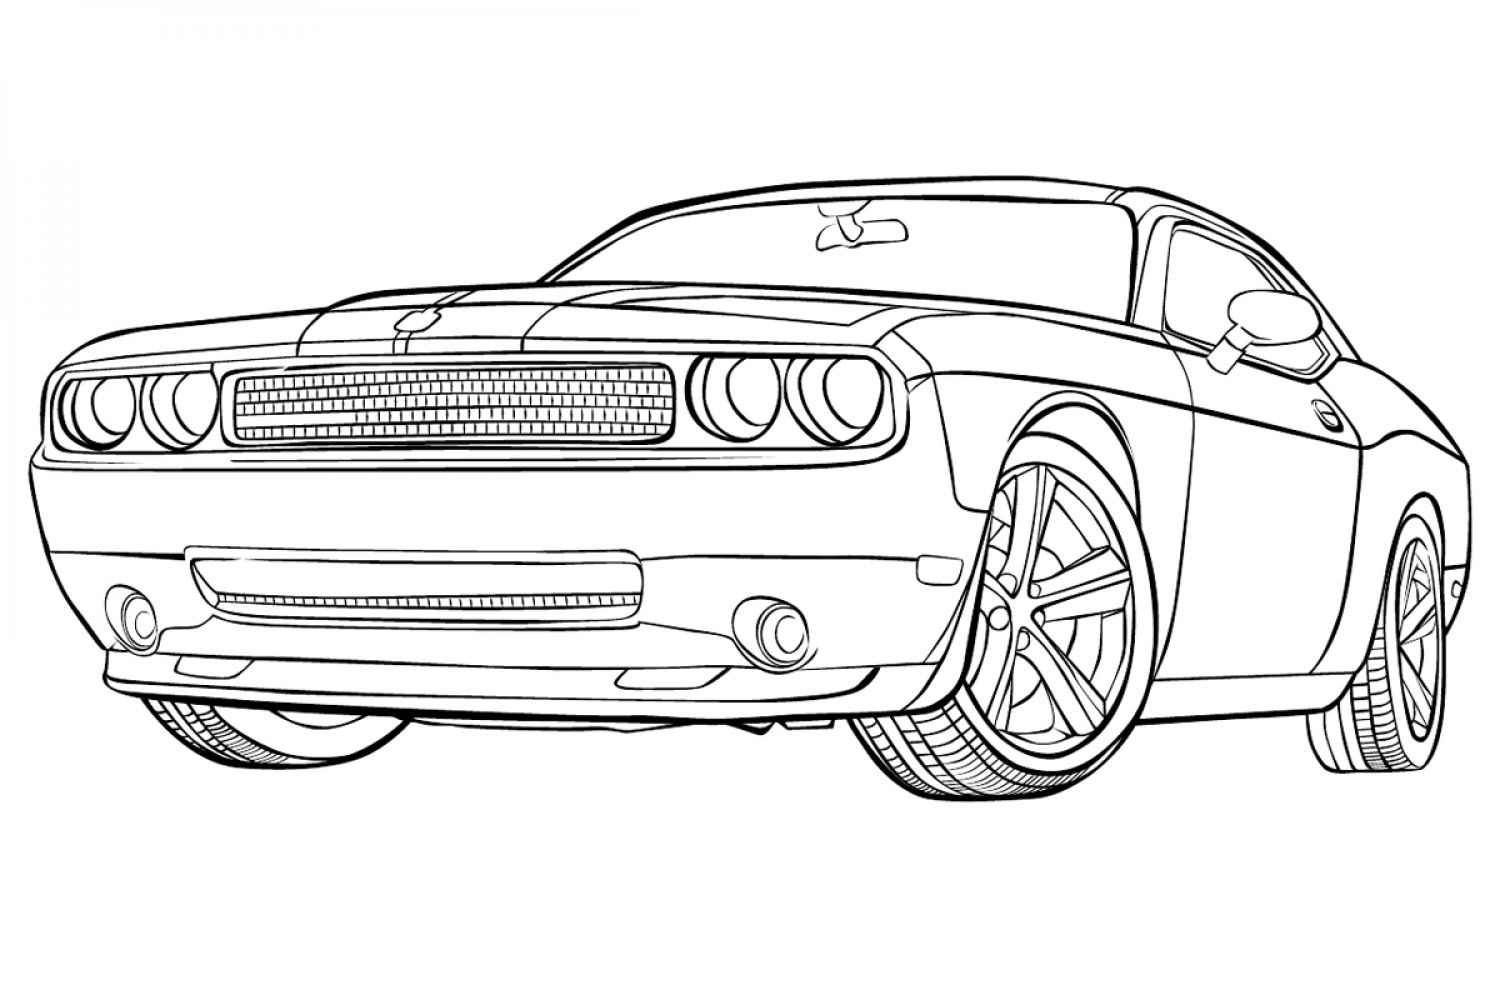 muscle car coloring pages muscle car coloring pages coloring home pages muscle car coloring